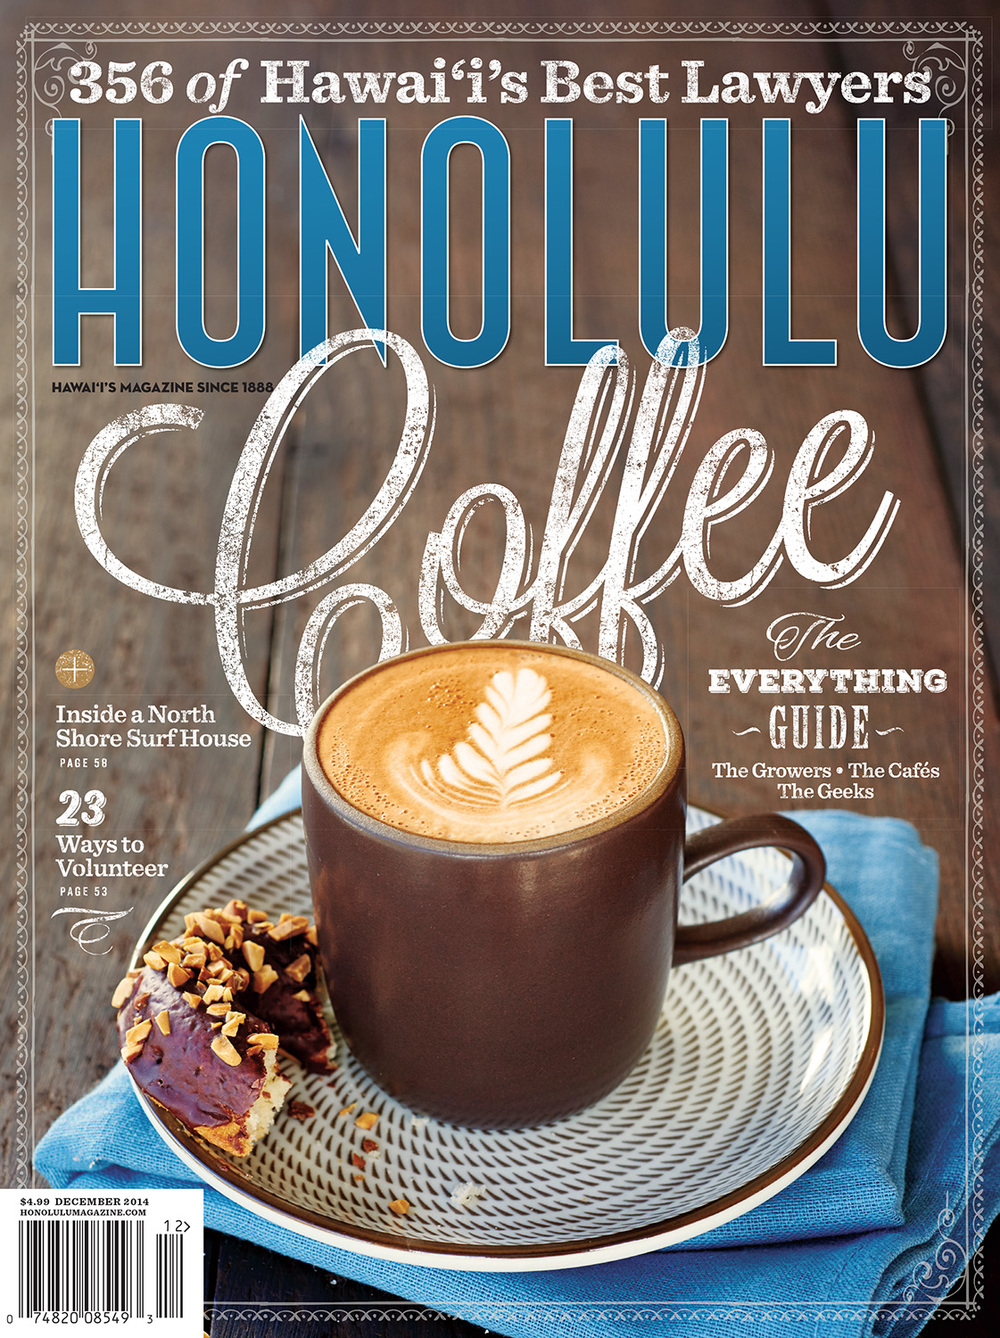 Honolulu Magazine    ©   2013-2016 Steve Czerniak